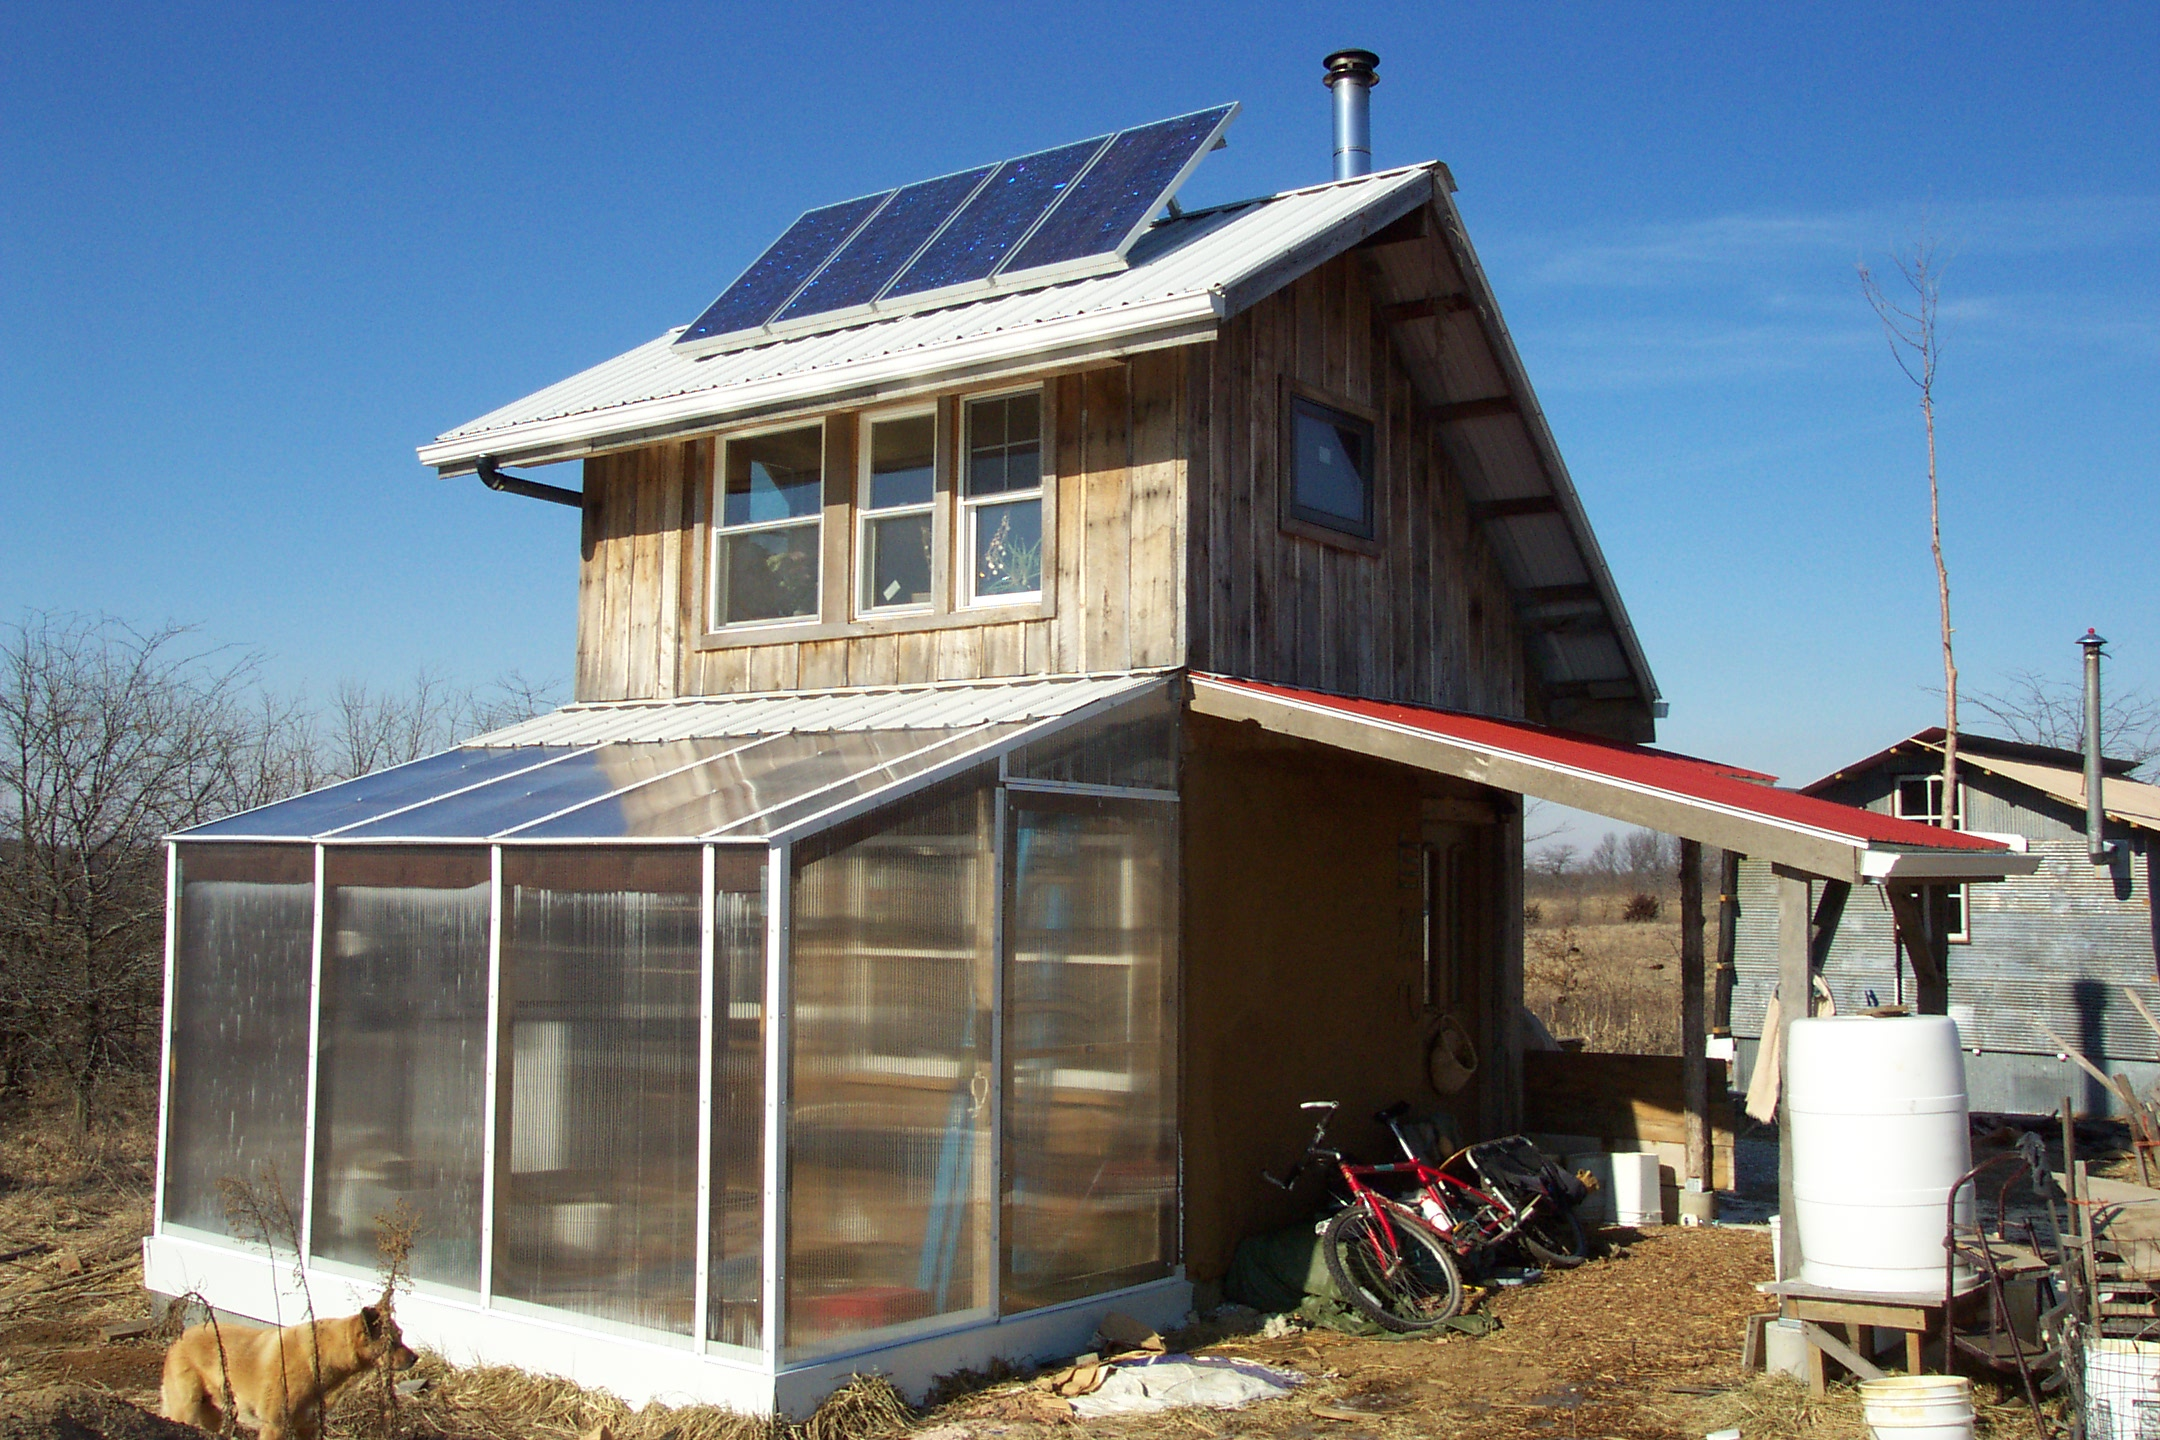 Sustainable home heating dancing rabbit ecovillage for Green home designs